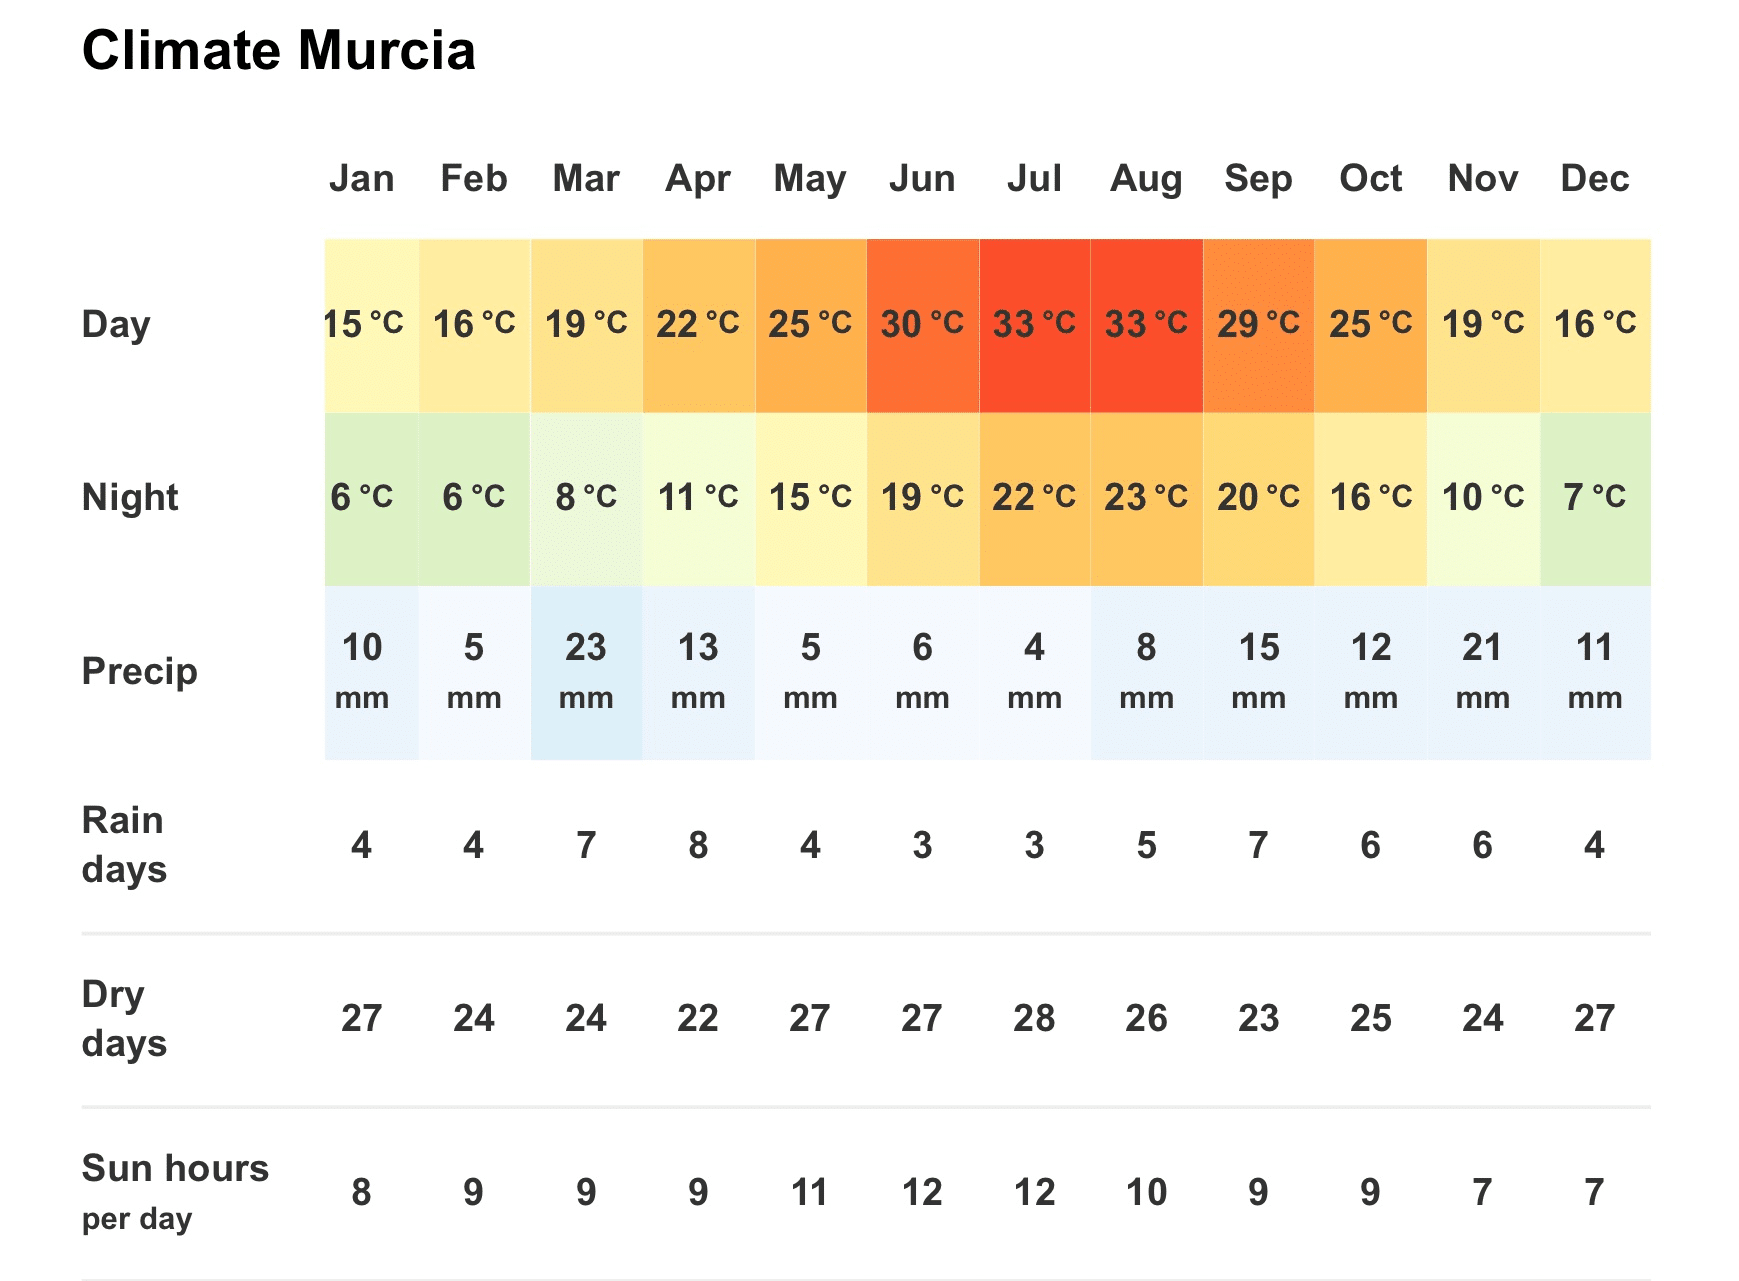 Climate guide for cycling holidays in Murcia